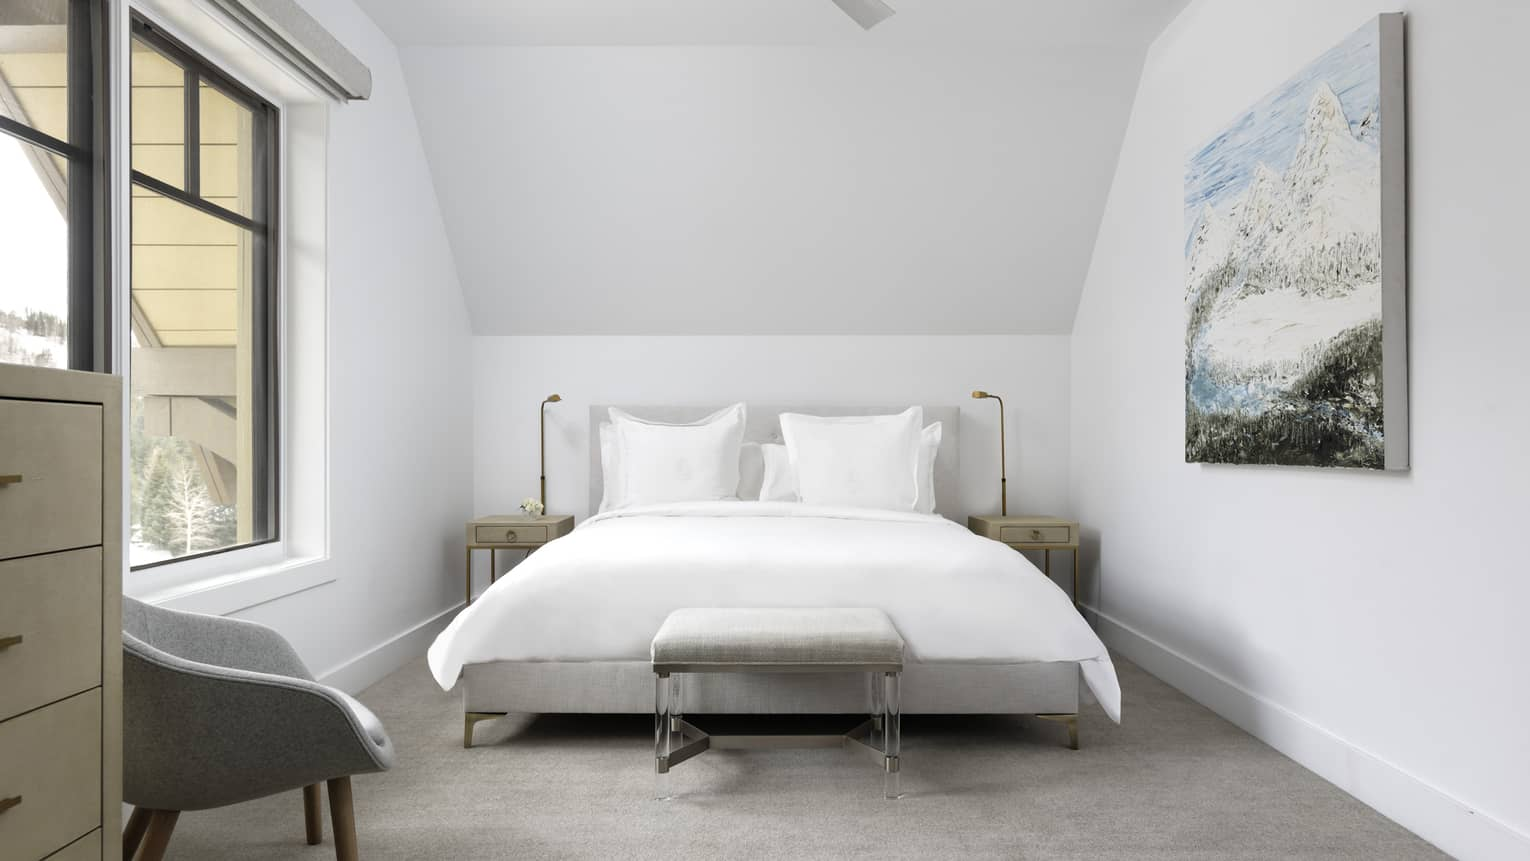 Bedroom with white walls, white king bed, light grey chair, artwork, window